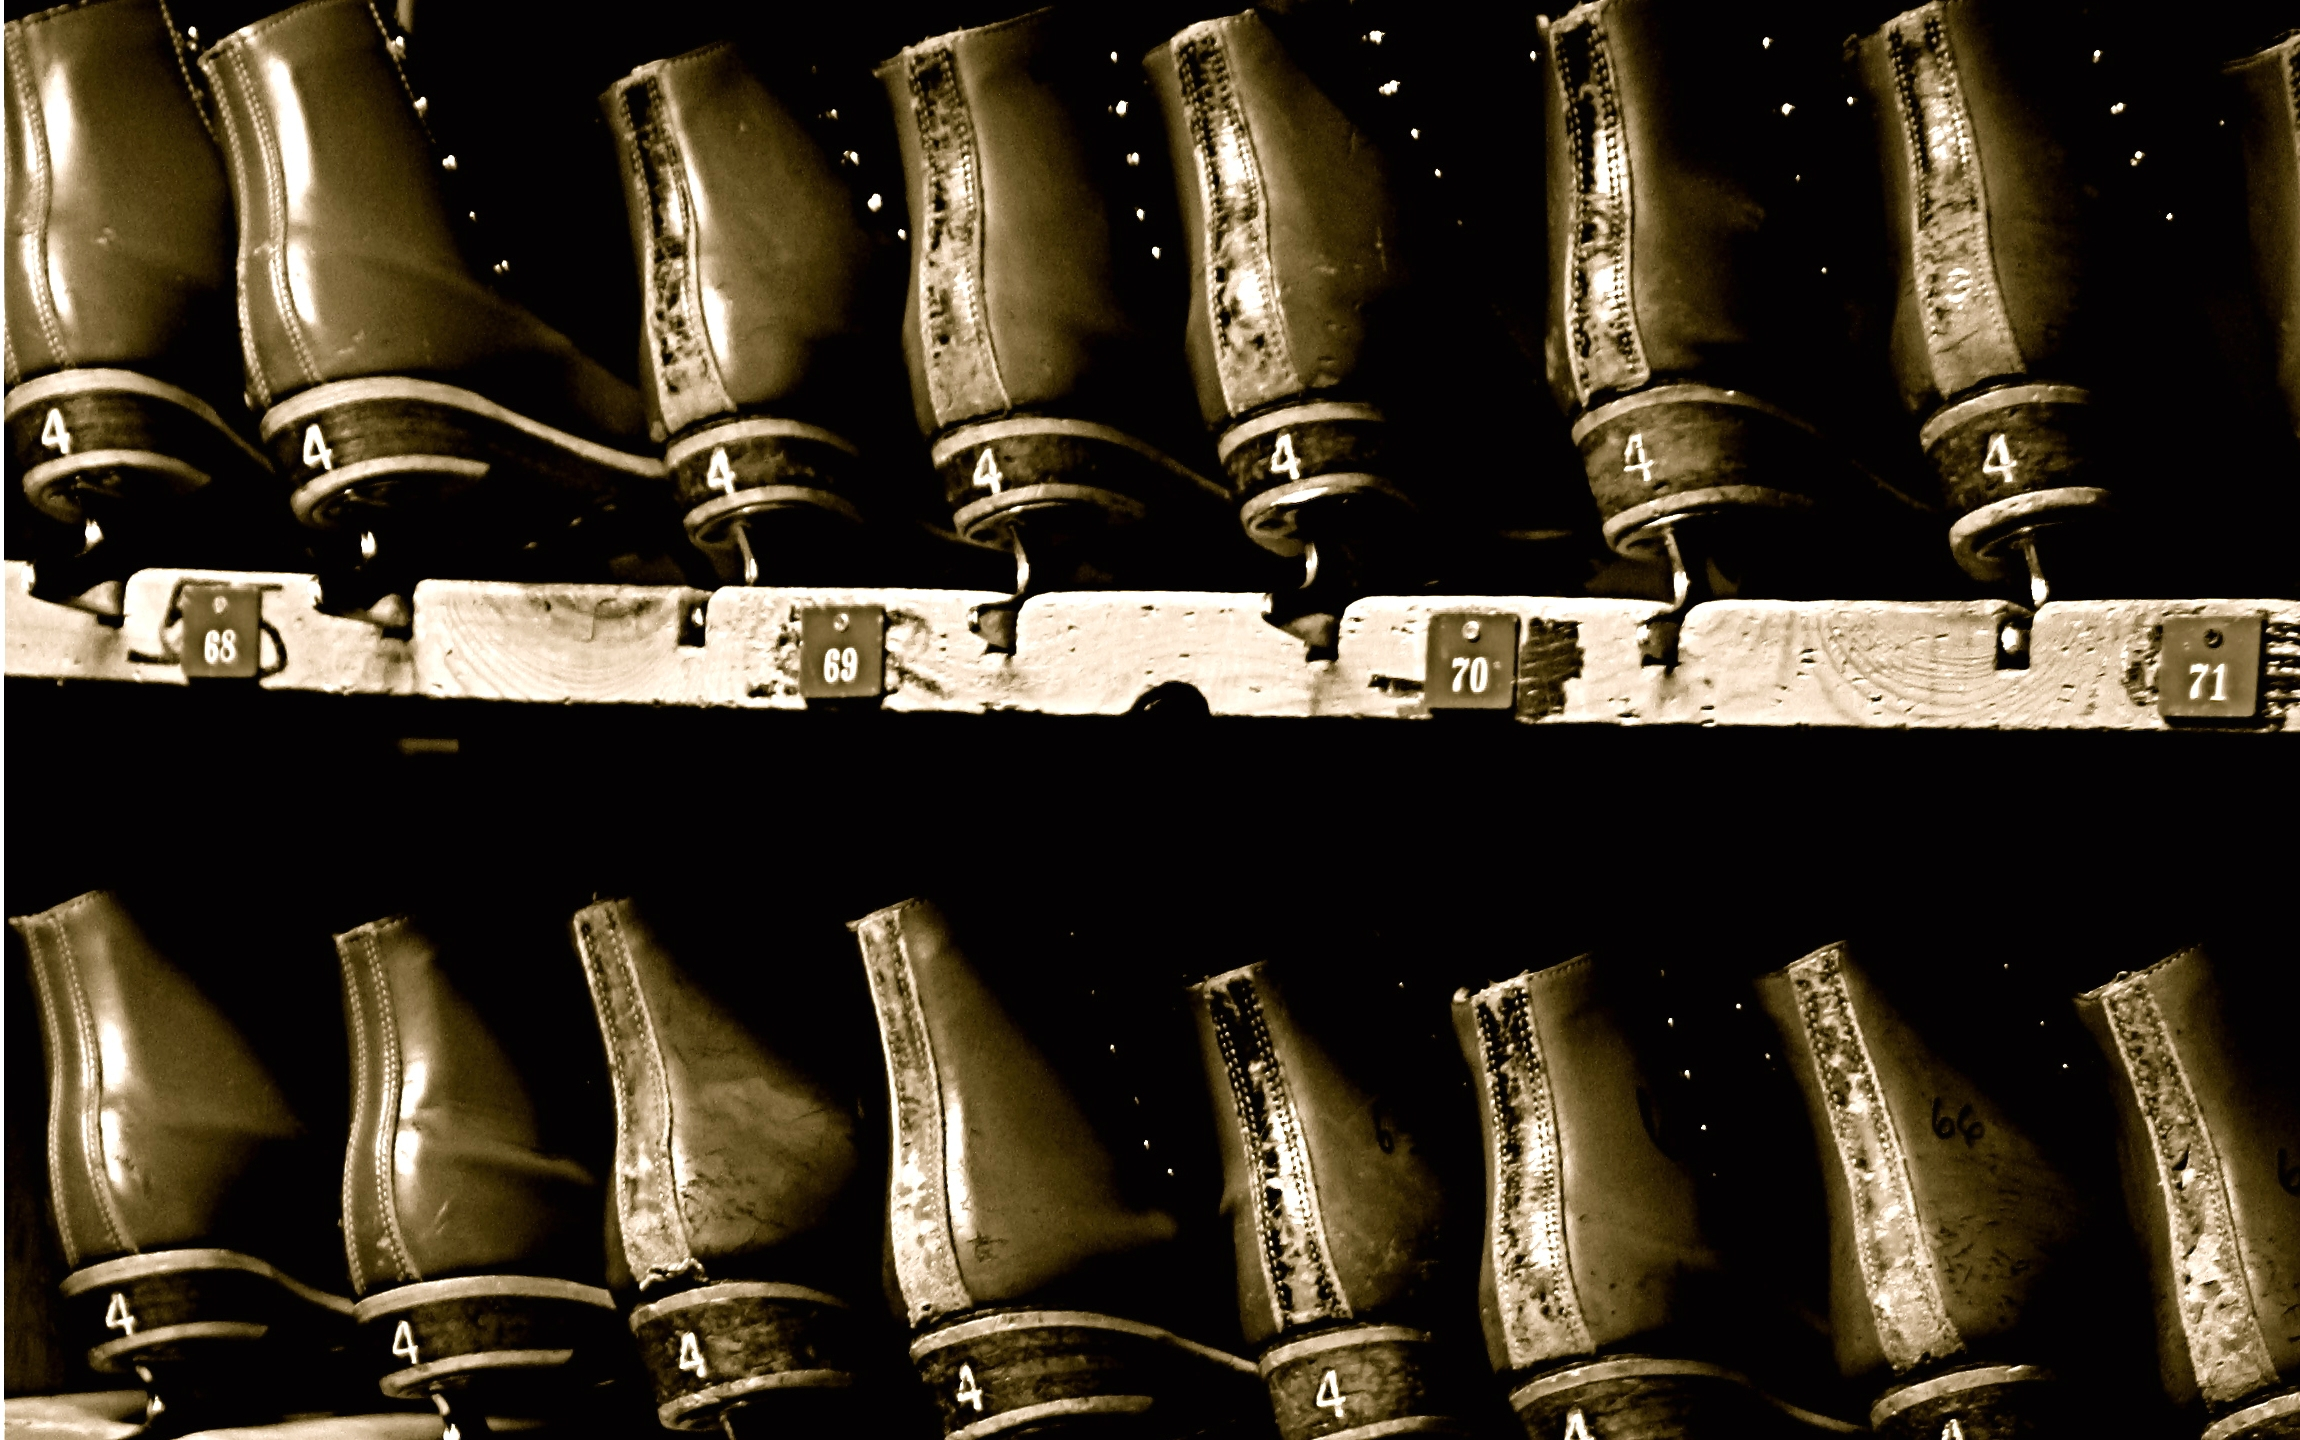 Rows of ice skates on shelves in black and white